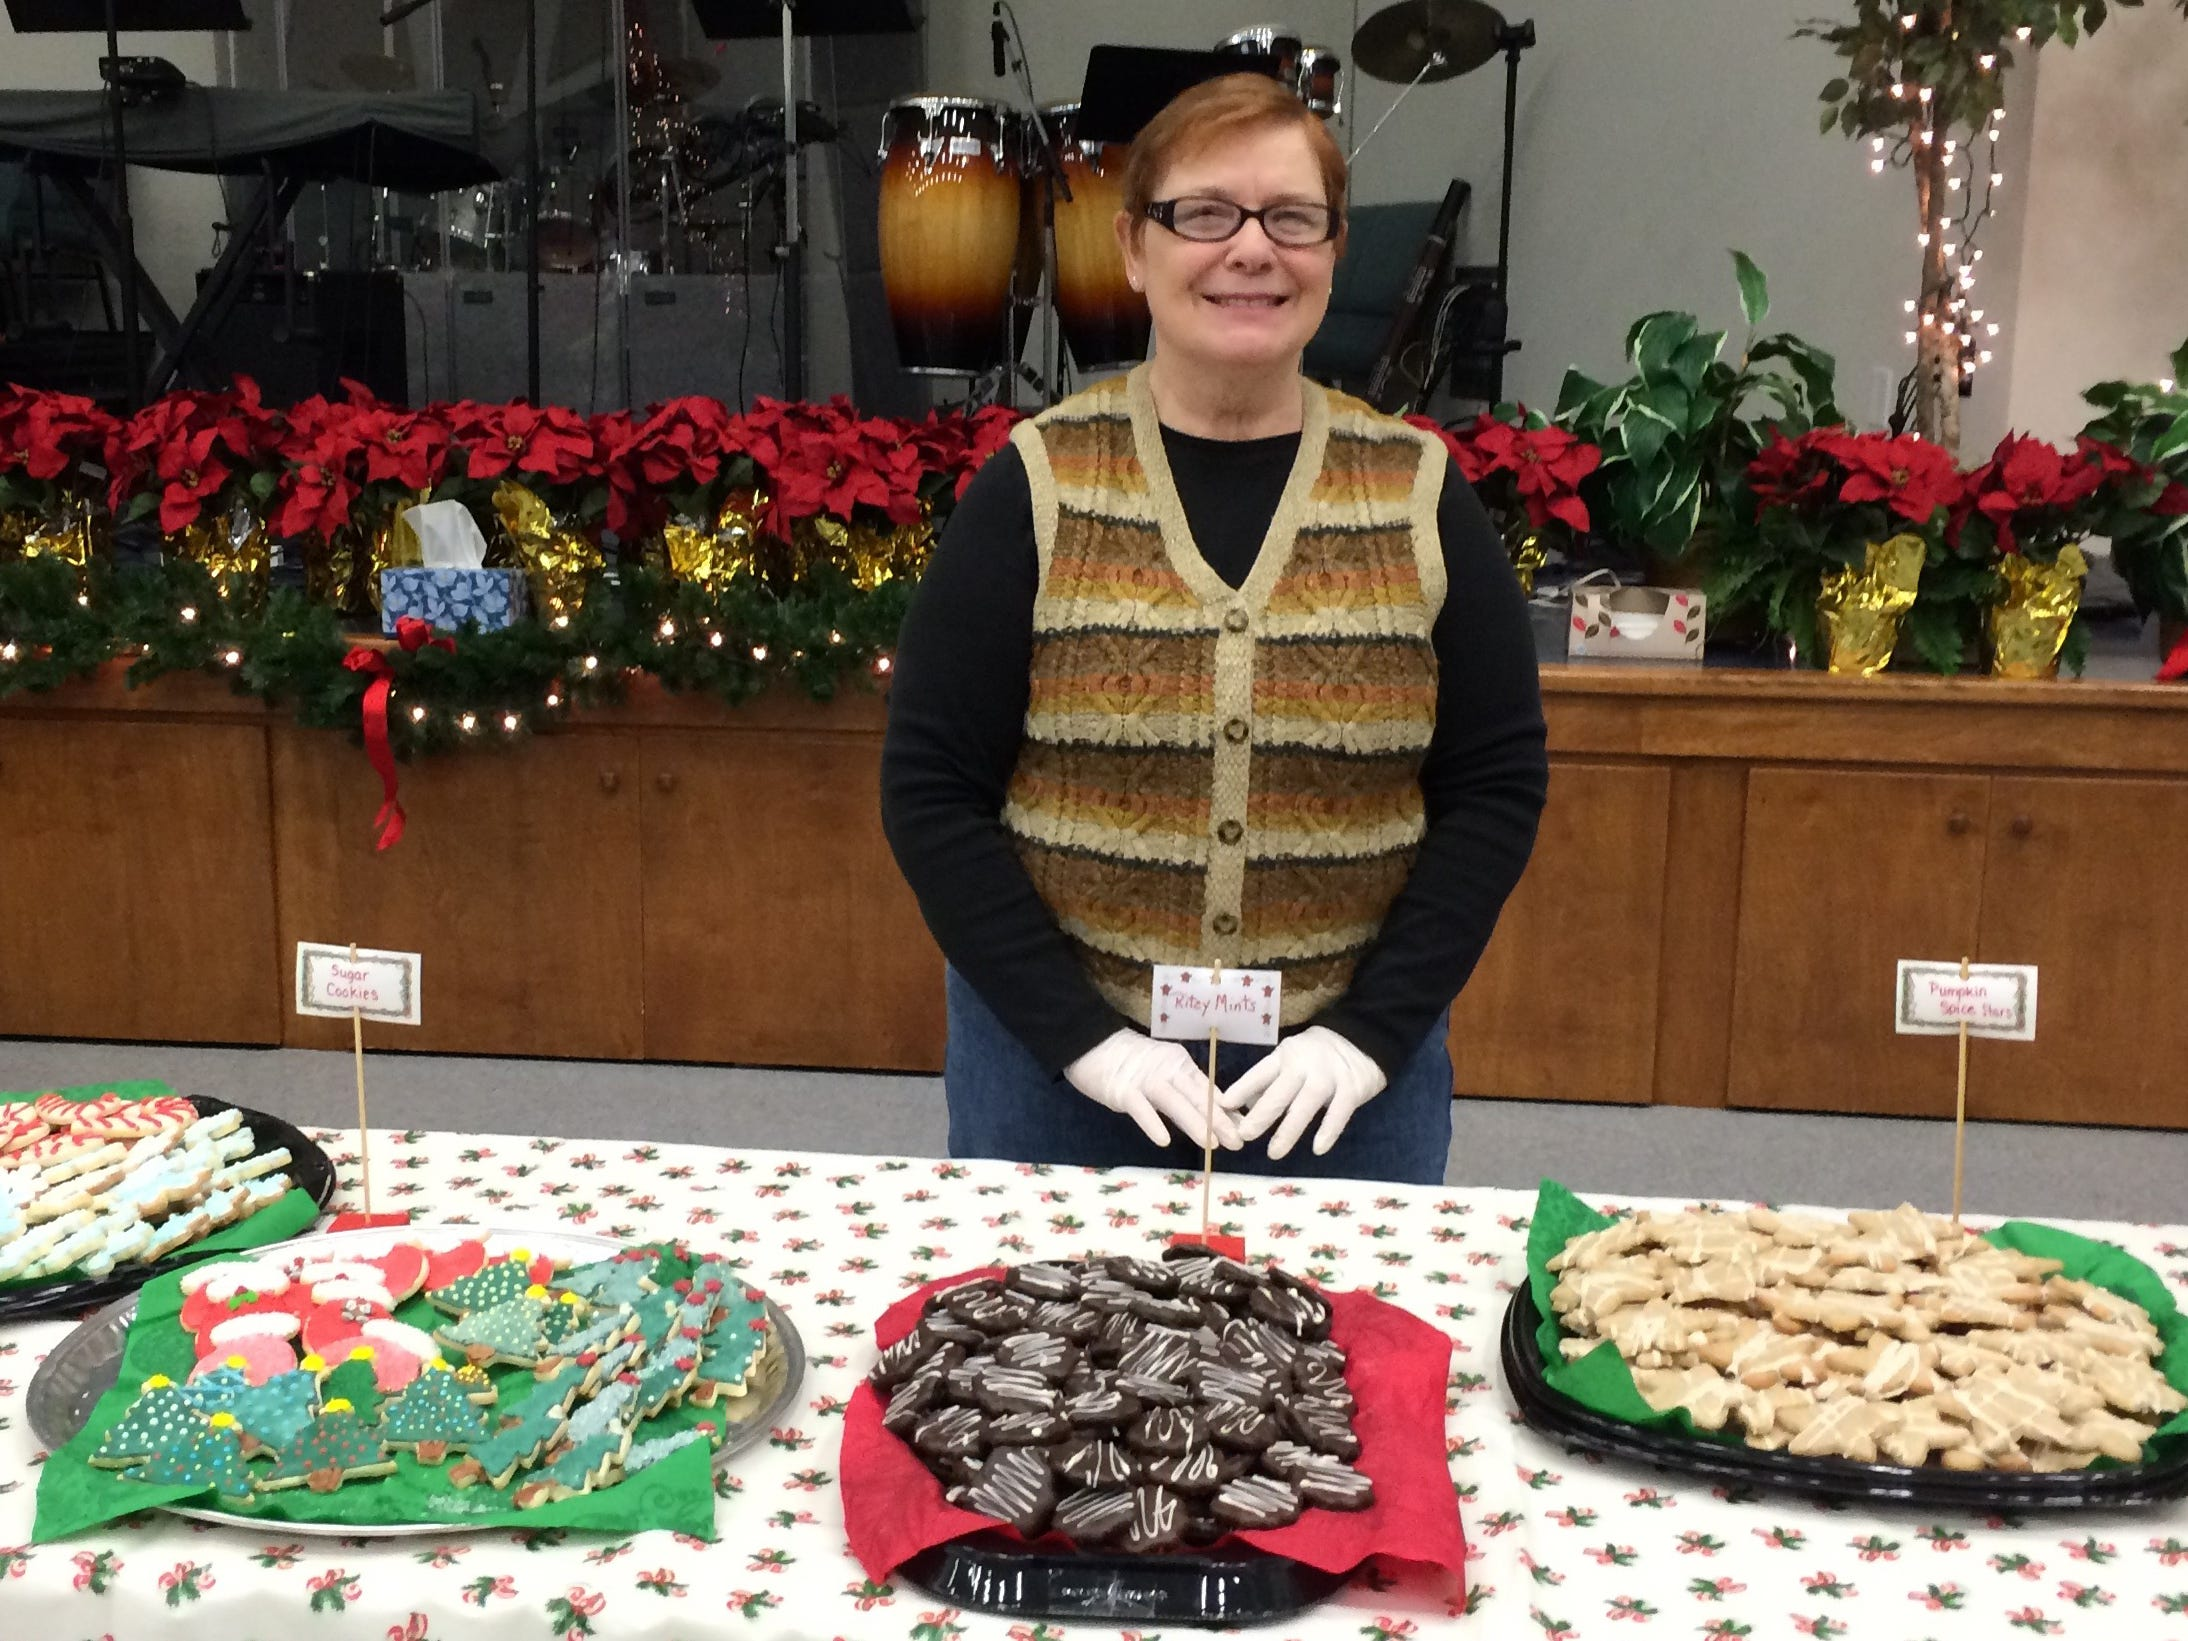 Women of Grace, the United Methodist WomenÕs (UMW) group of Grace United Methodist Church, 473 Plank Road, New Freedom, will hold its annual Cookie Walk at the church, Saturday, December 15 from 9:00 a.m. until supplies are exhausted. Bev Bagnall prepares to serve cookies to crowds lined up at a previous yearÕs Cookie Walk. submitted